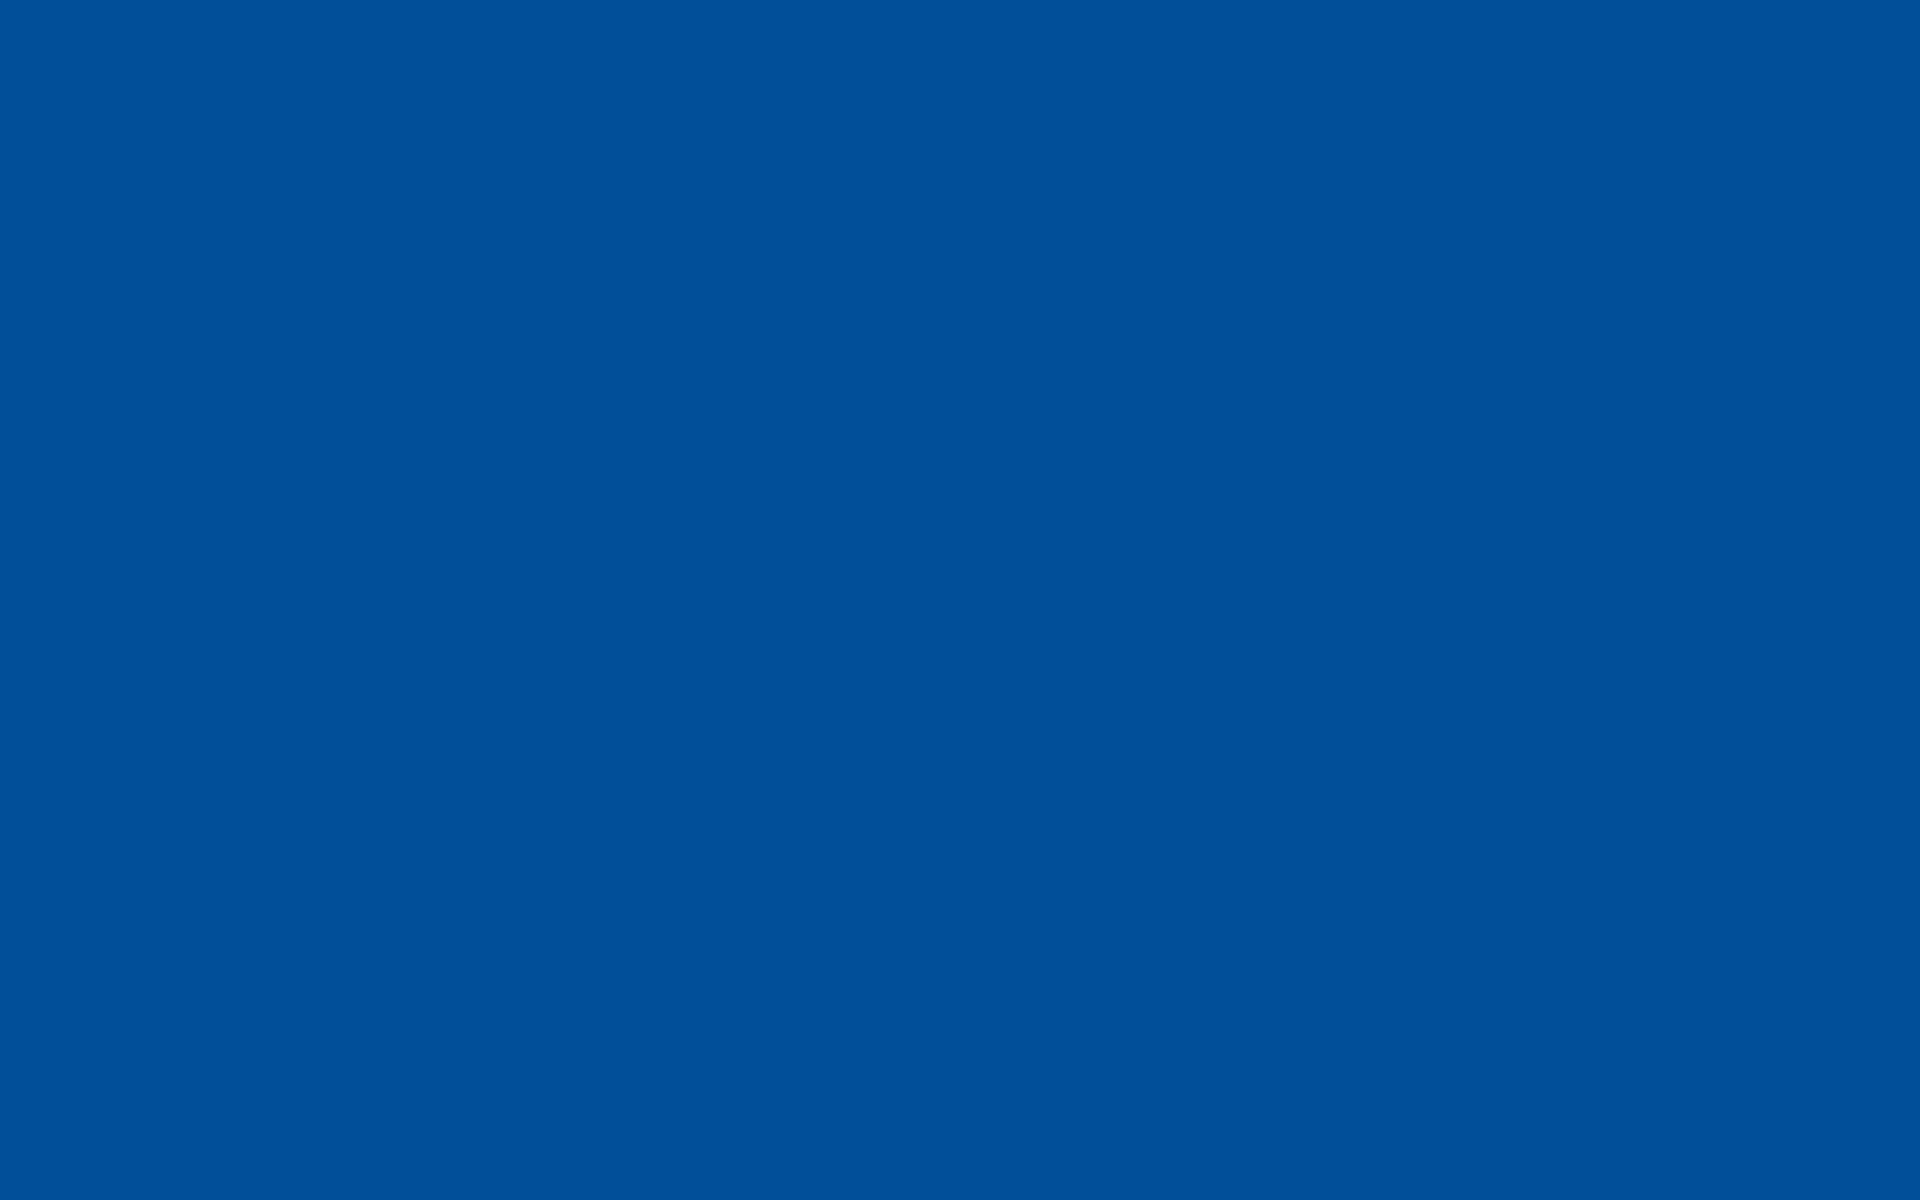 1920x1200 USAFA Blue Solid Color Background